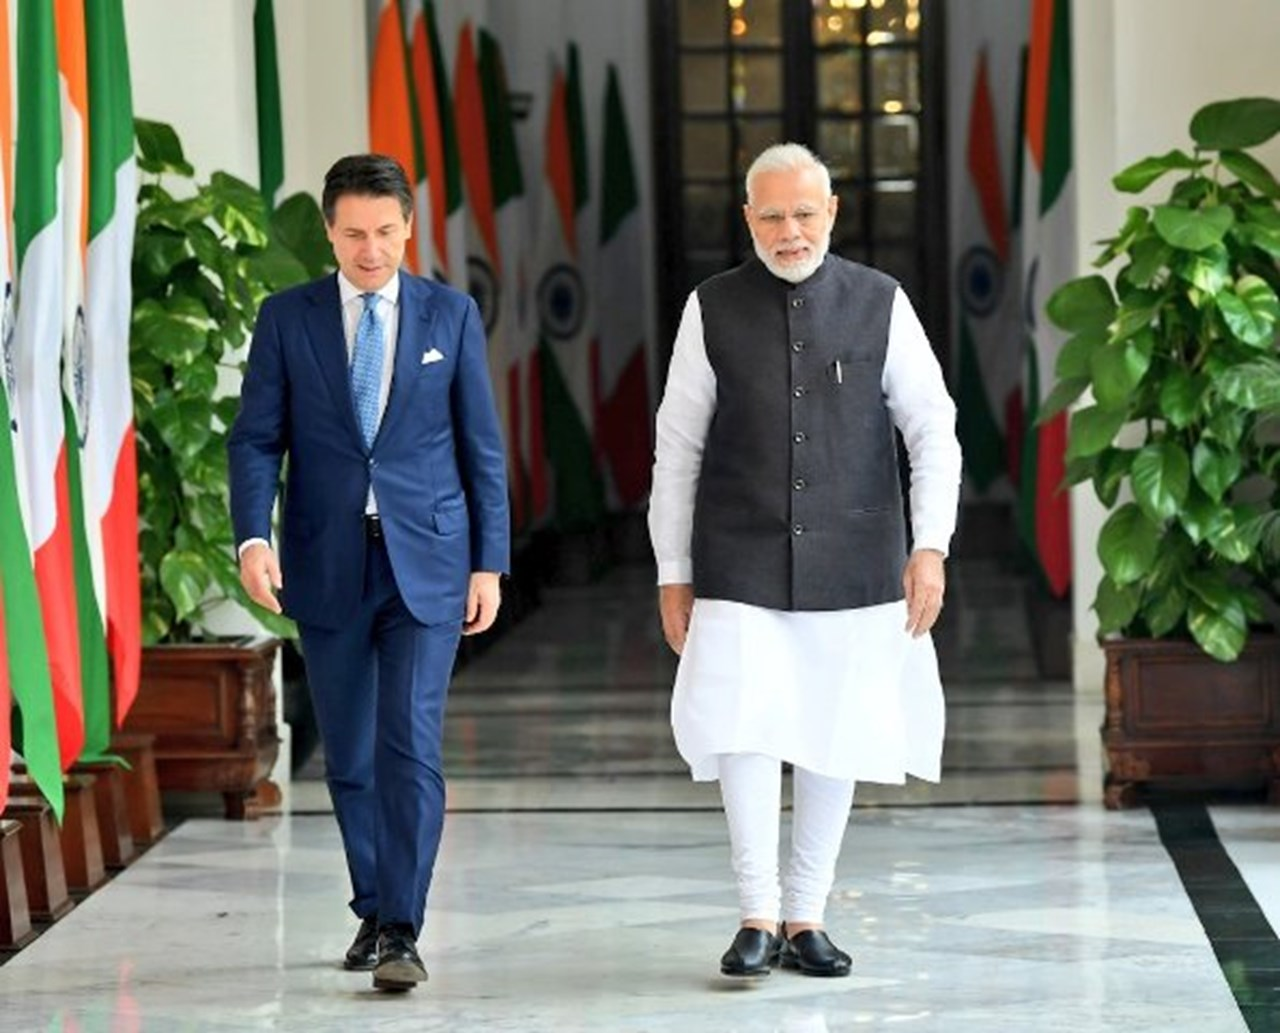 India and Italy plan to promote bilateral economic cooperation after Conte visit